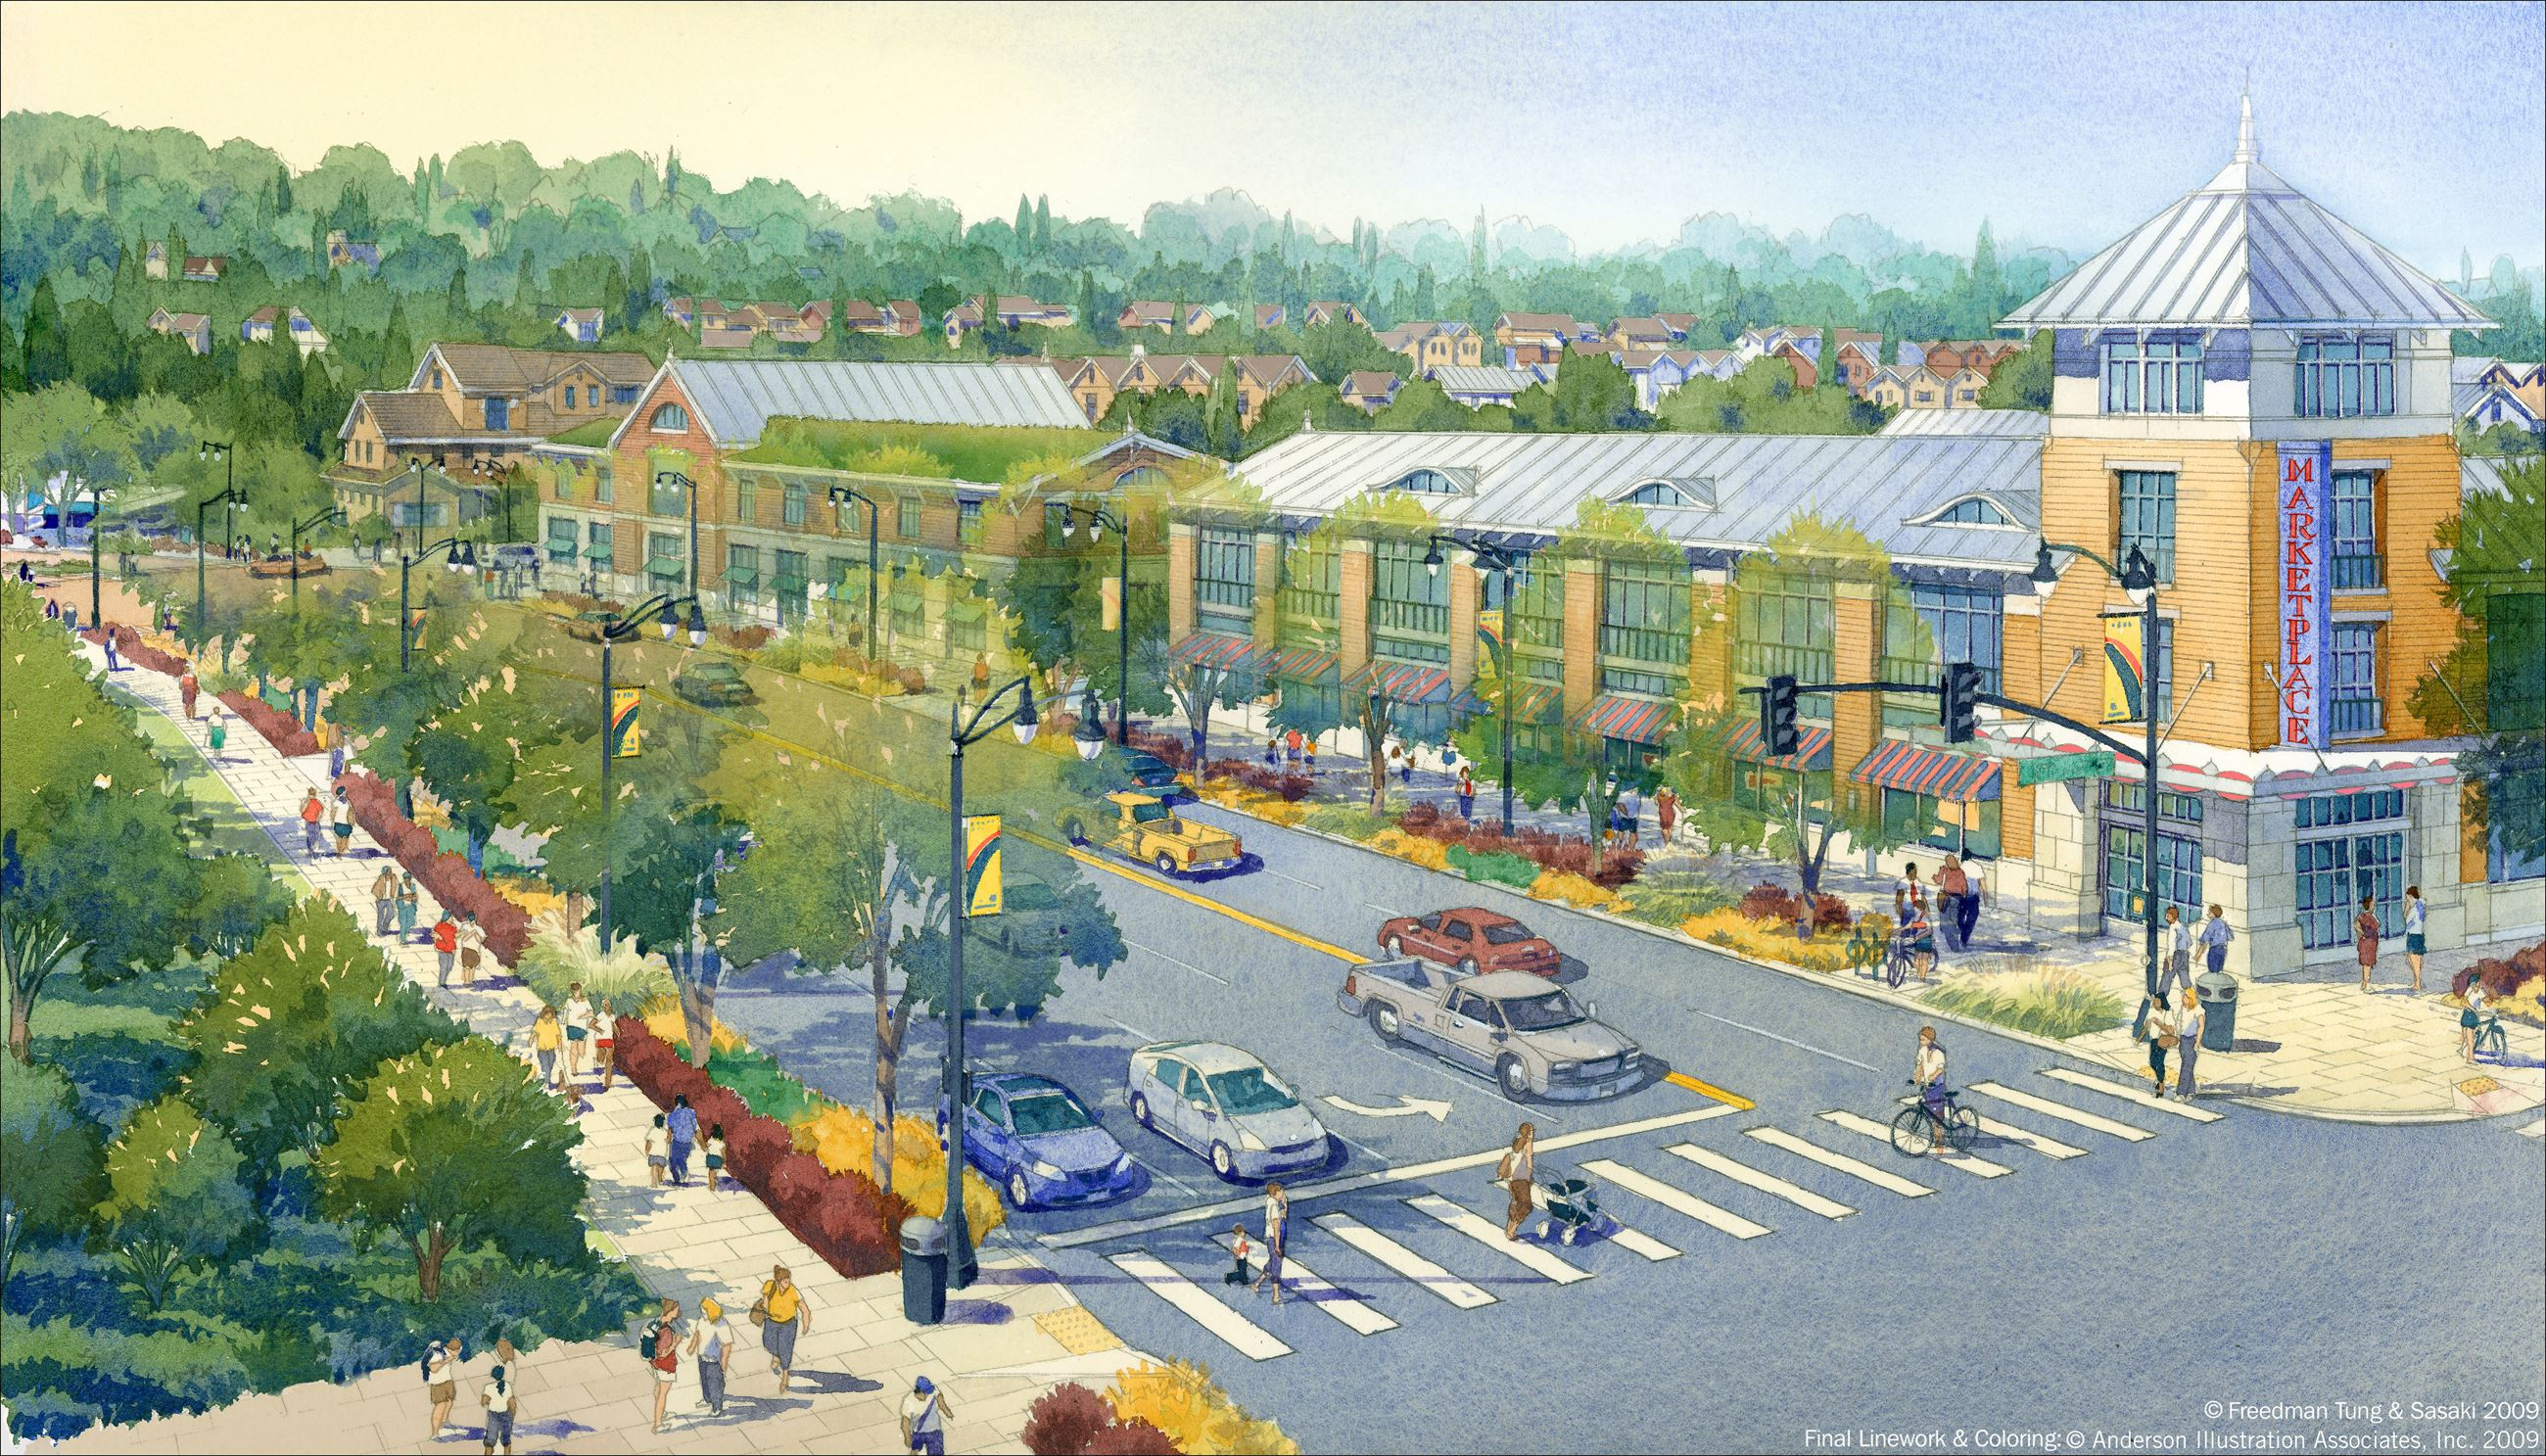 Rendering of Multiway Blvd